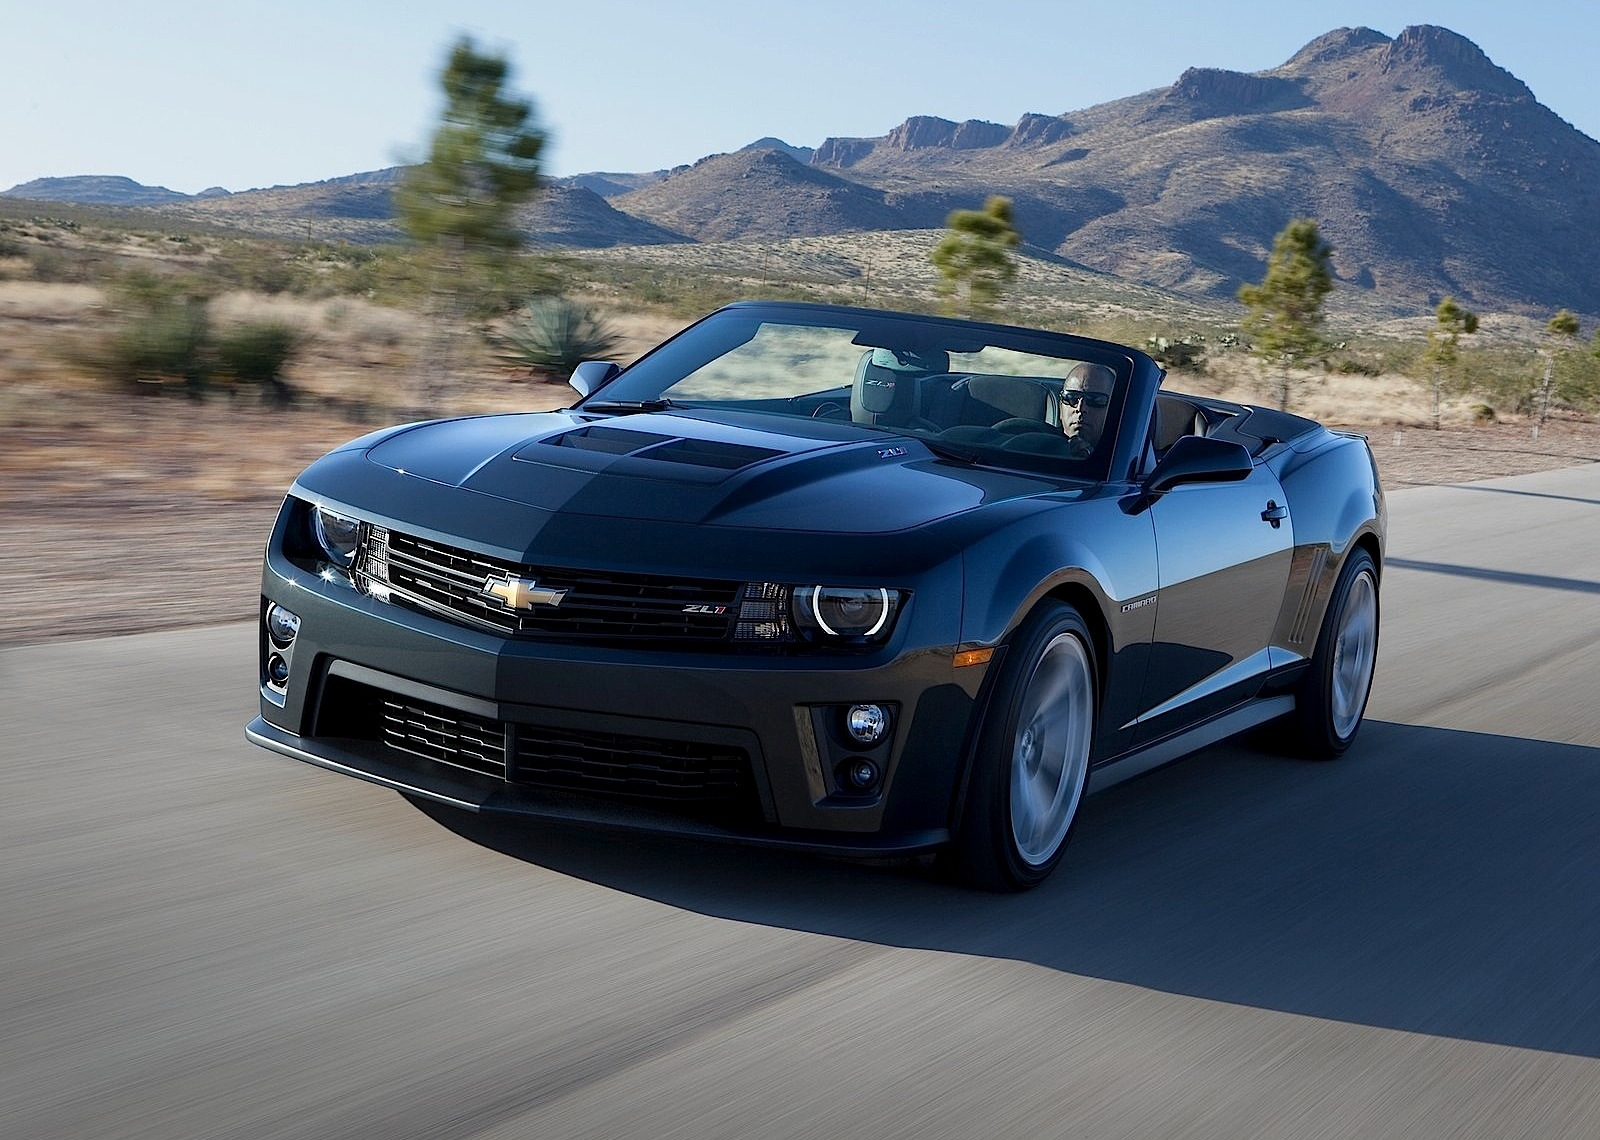 chevrolet camaro zl1 convertible 2012 2013 2014 2015 2016 autoevolution. Black Bedroom Furniture Sets. Home Design Ideas